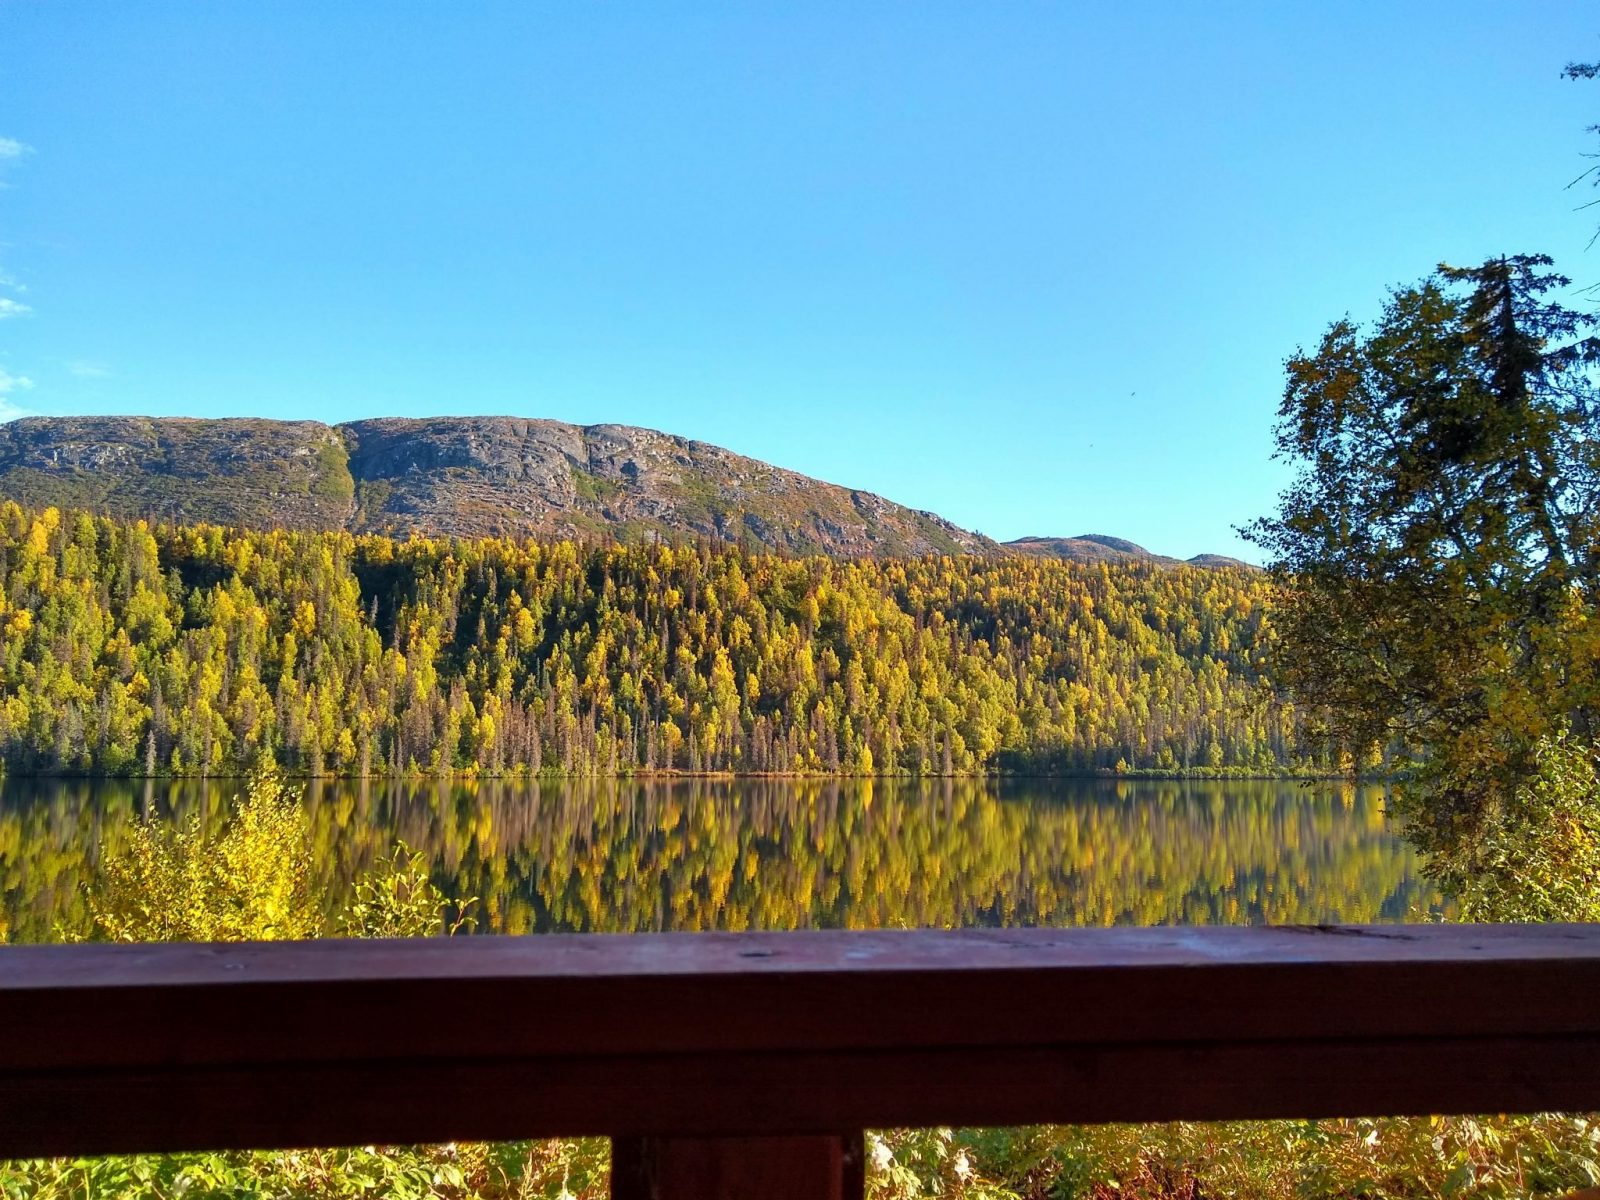 A wooden railing in the foreground with a calm lake surronded by trees and hills